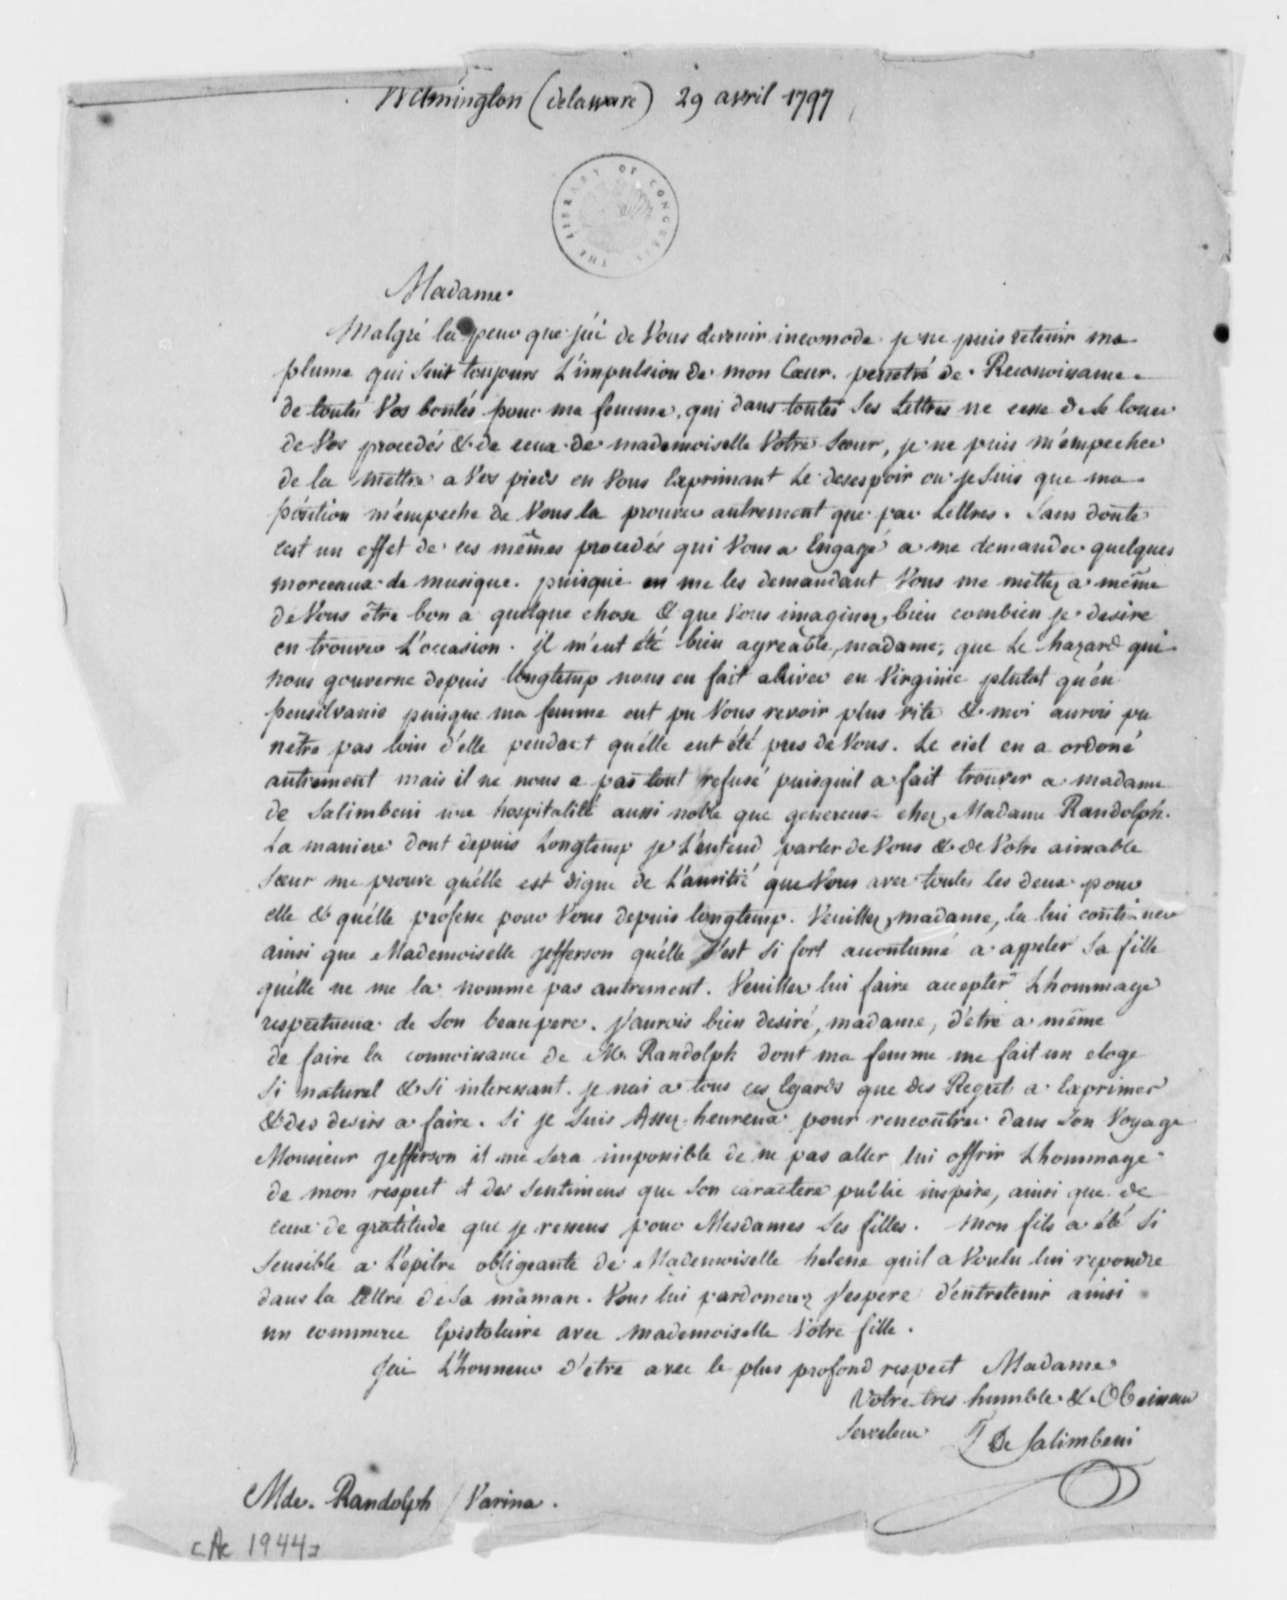 T. de Salimbeui to Martha Randolph, April 29, 1797, in French